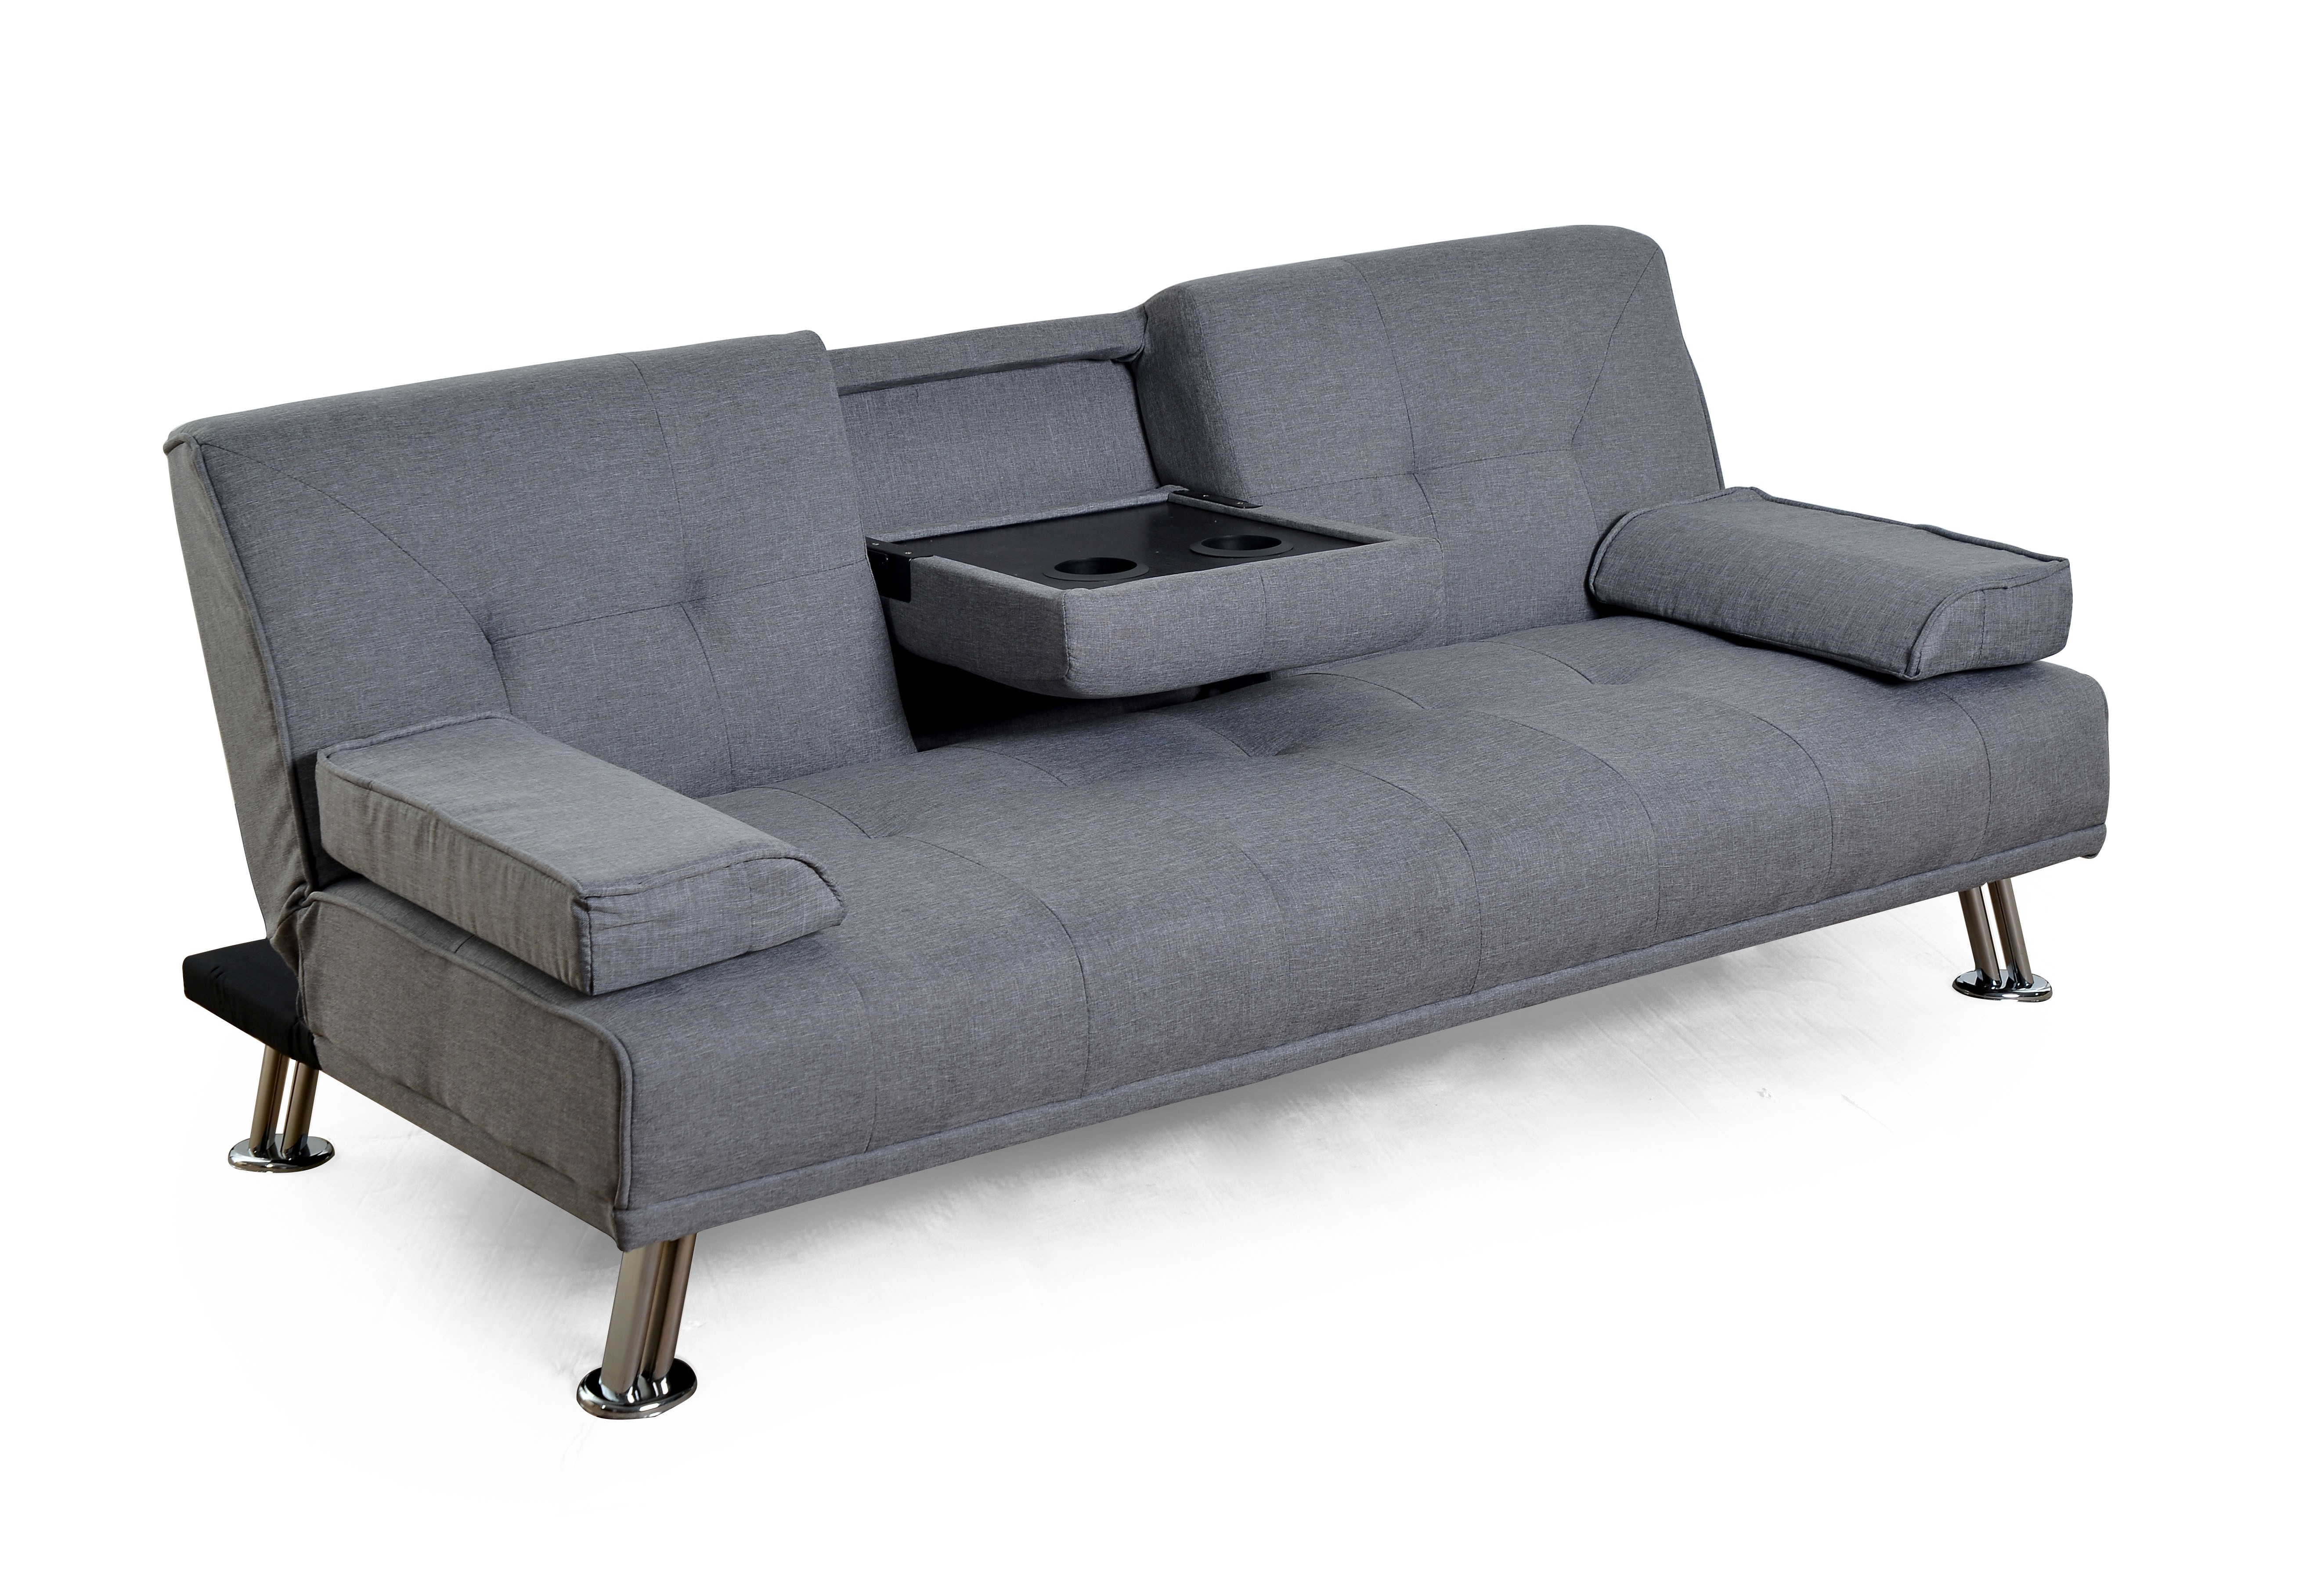 Sillon Futon Cama City Reclinable Gris